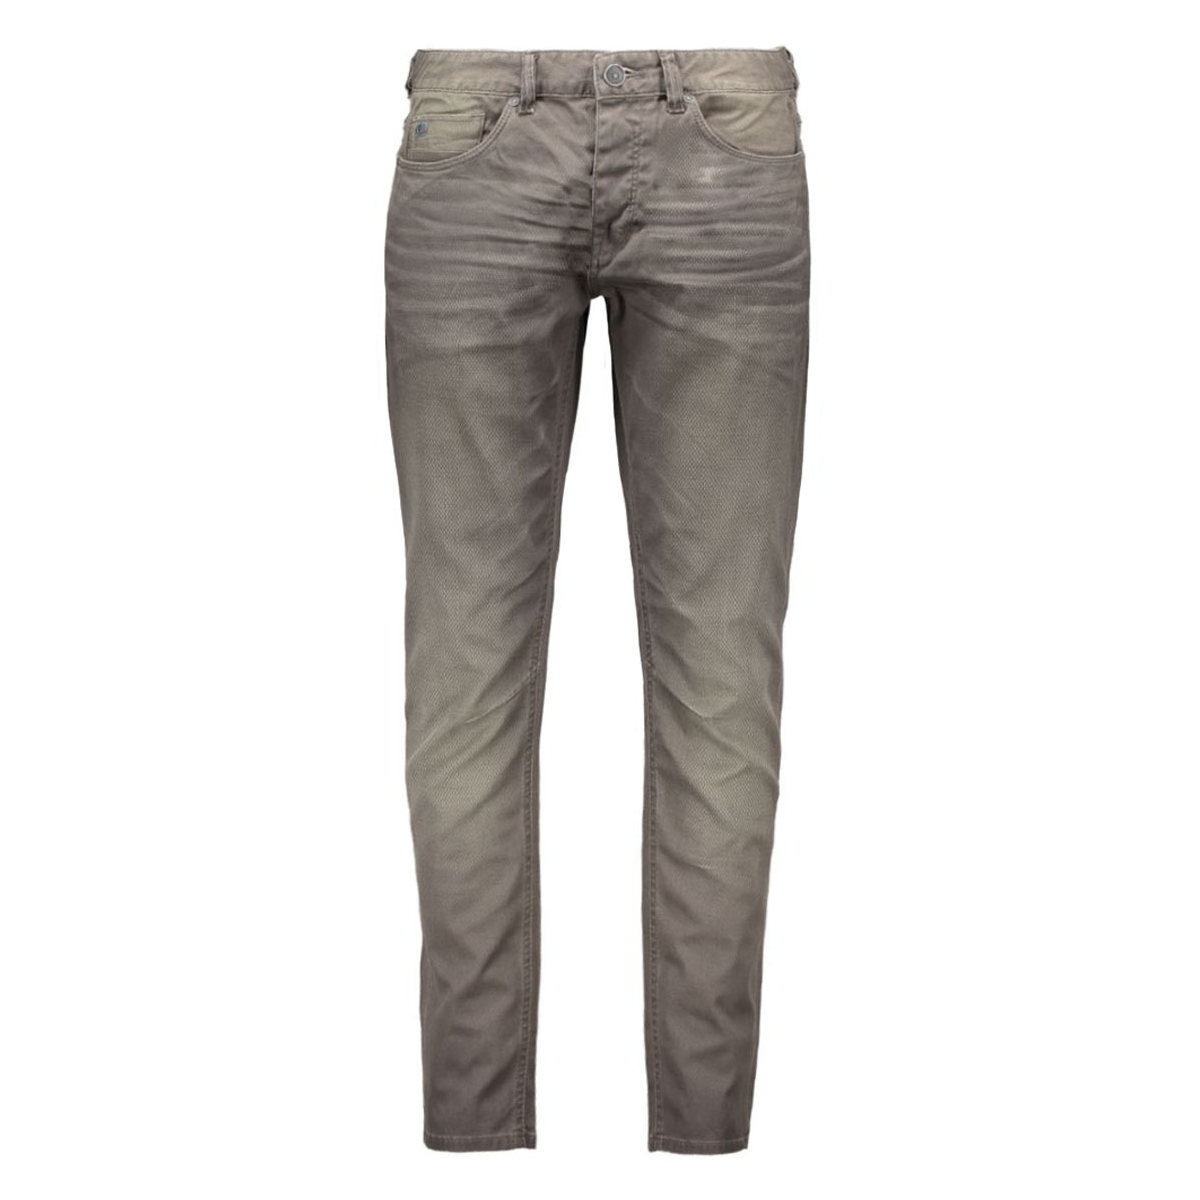 ctr66106 cast iron jeans 7695